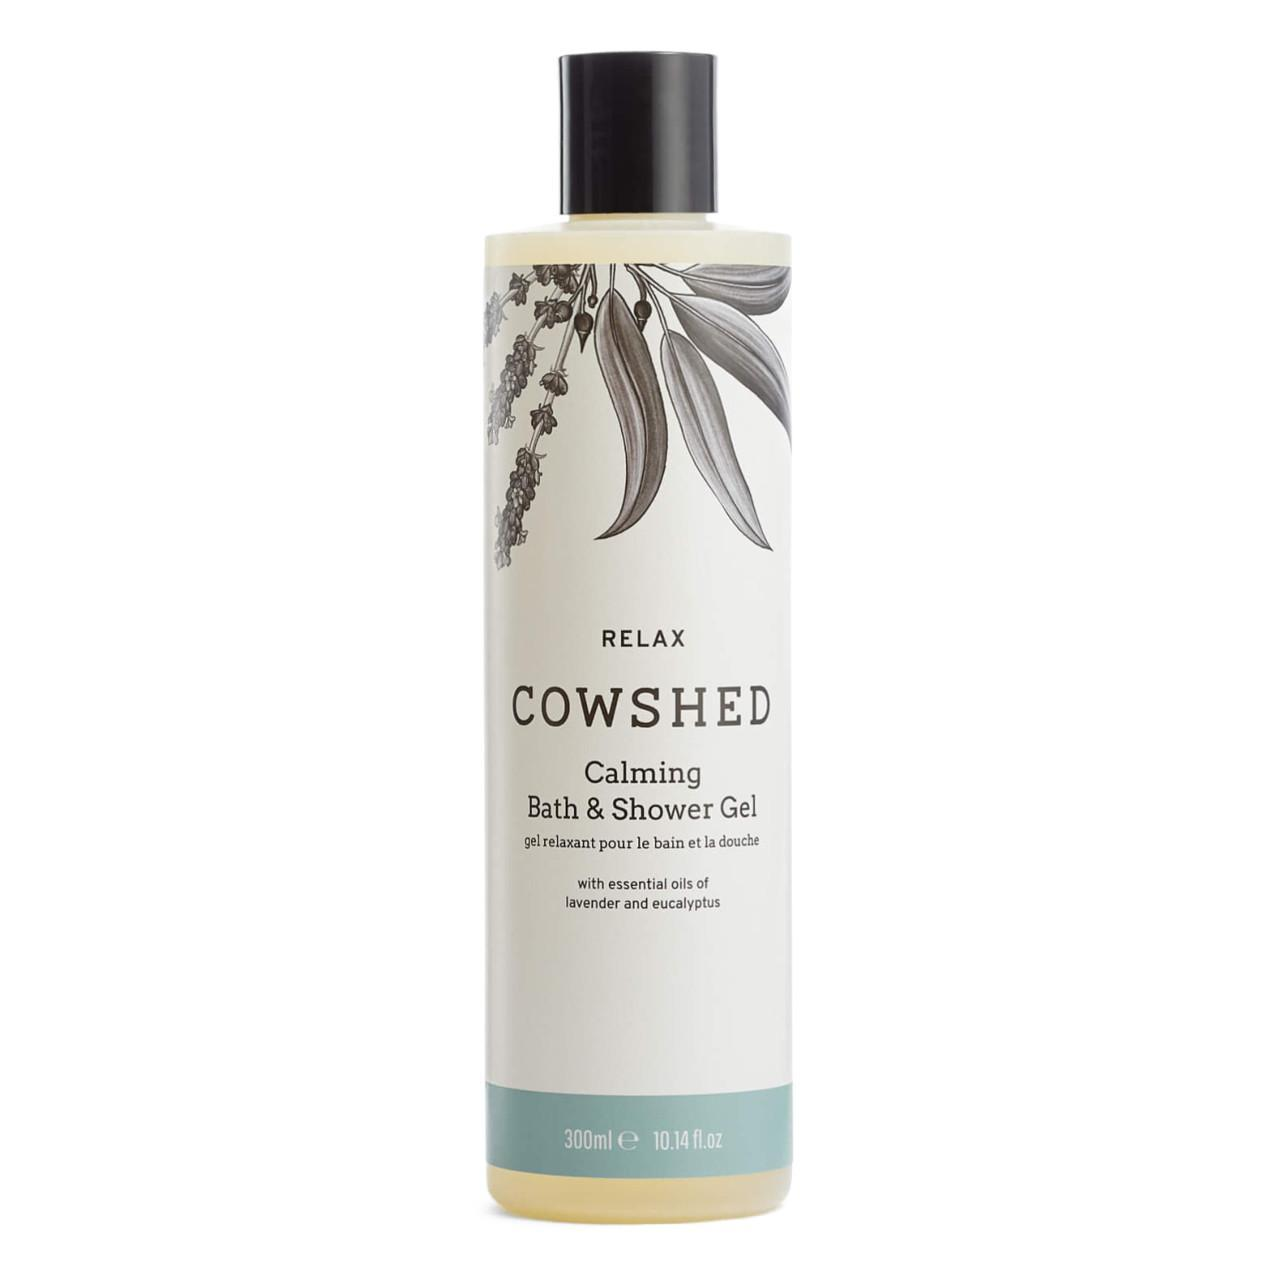 Cowshed Body Wash